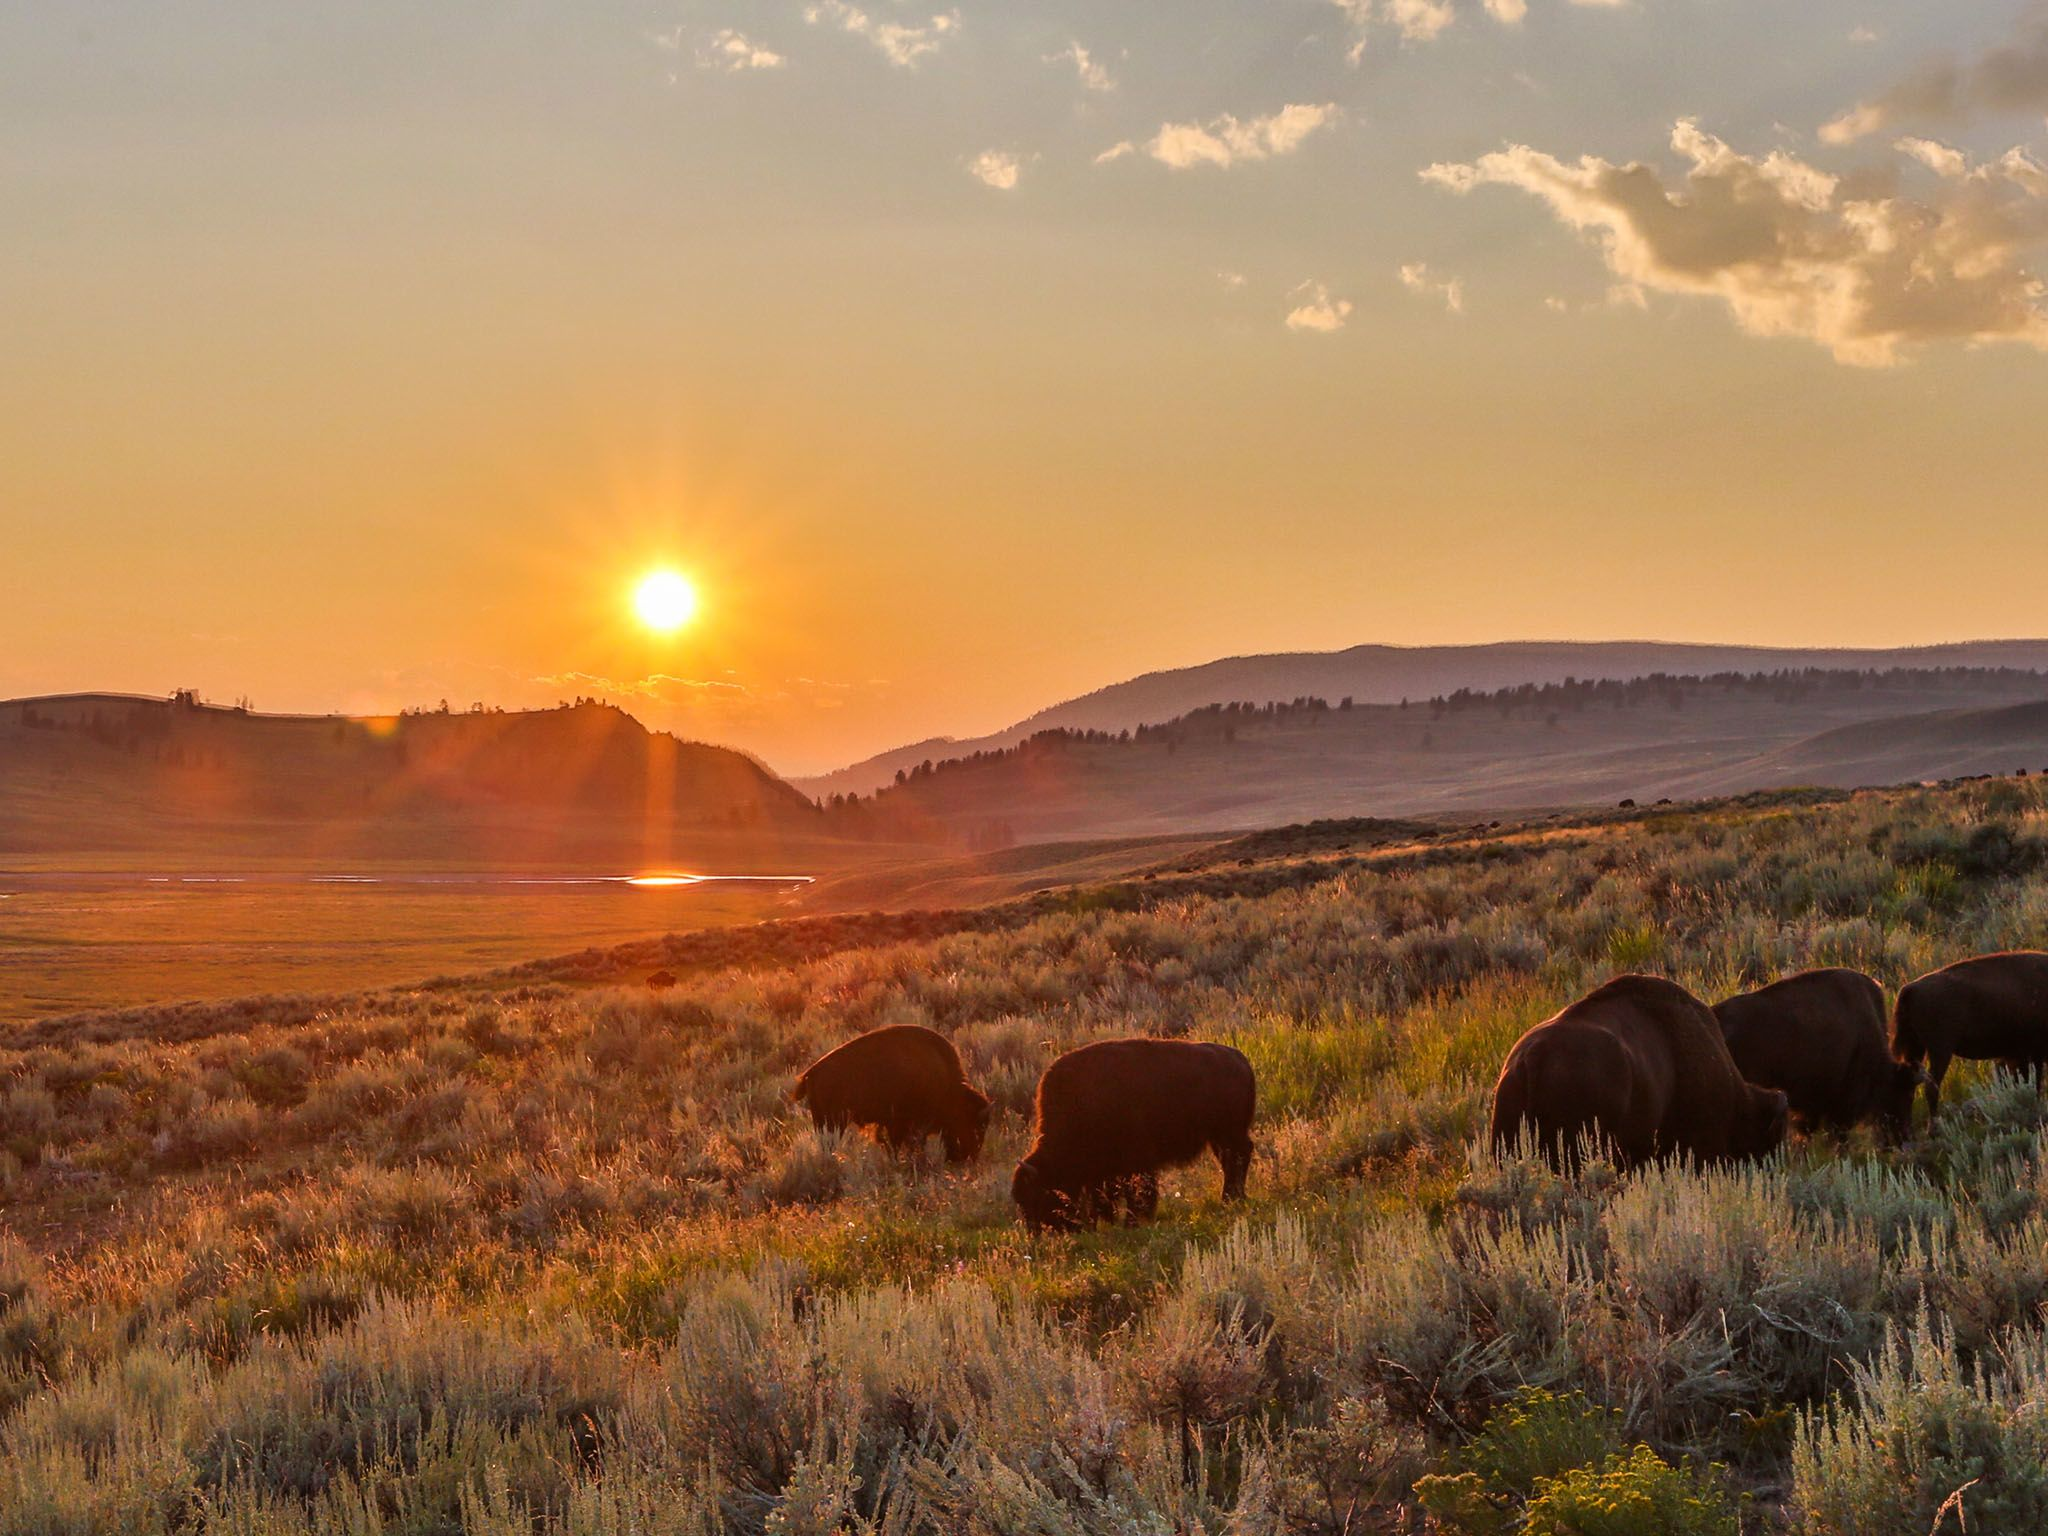 Yellowstone, WYO.: Bison herd in summer evening light during the bison rut. This image is from Wi... [Фото дня - Ноябрь 2015]